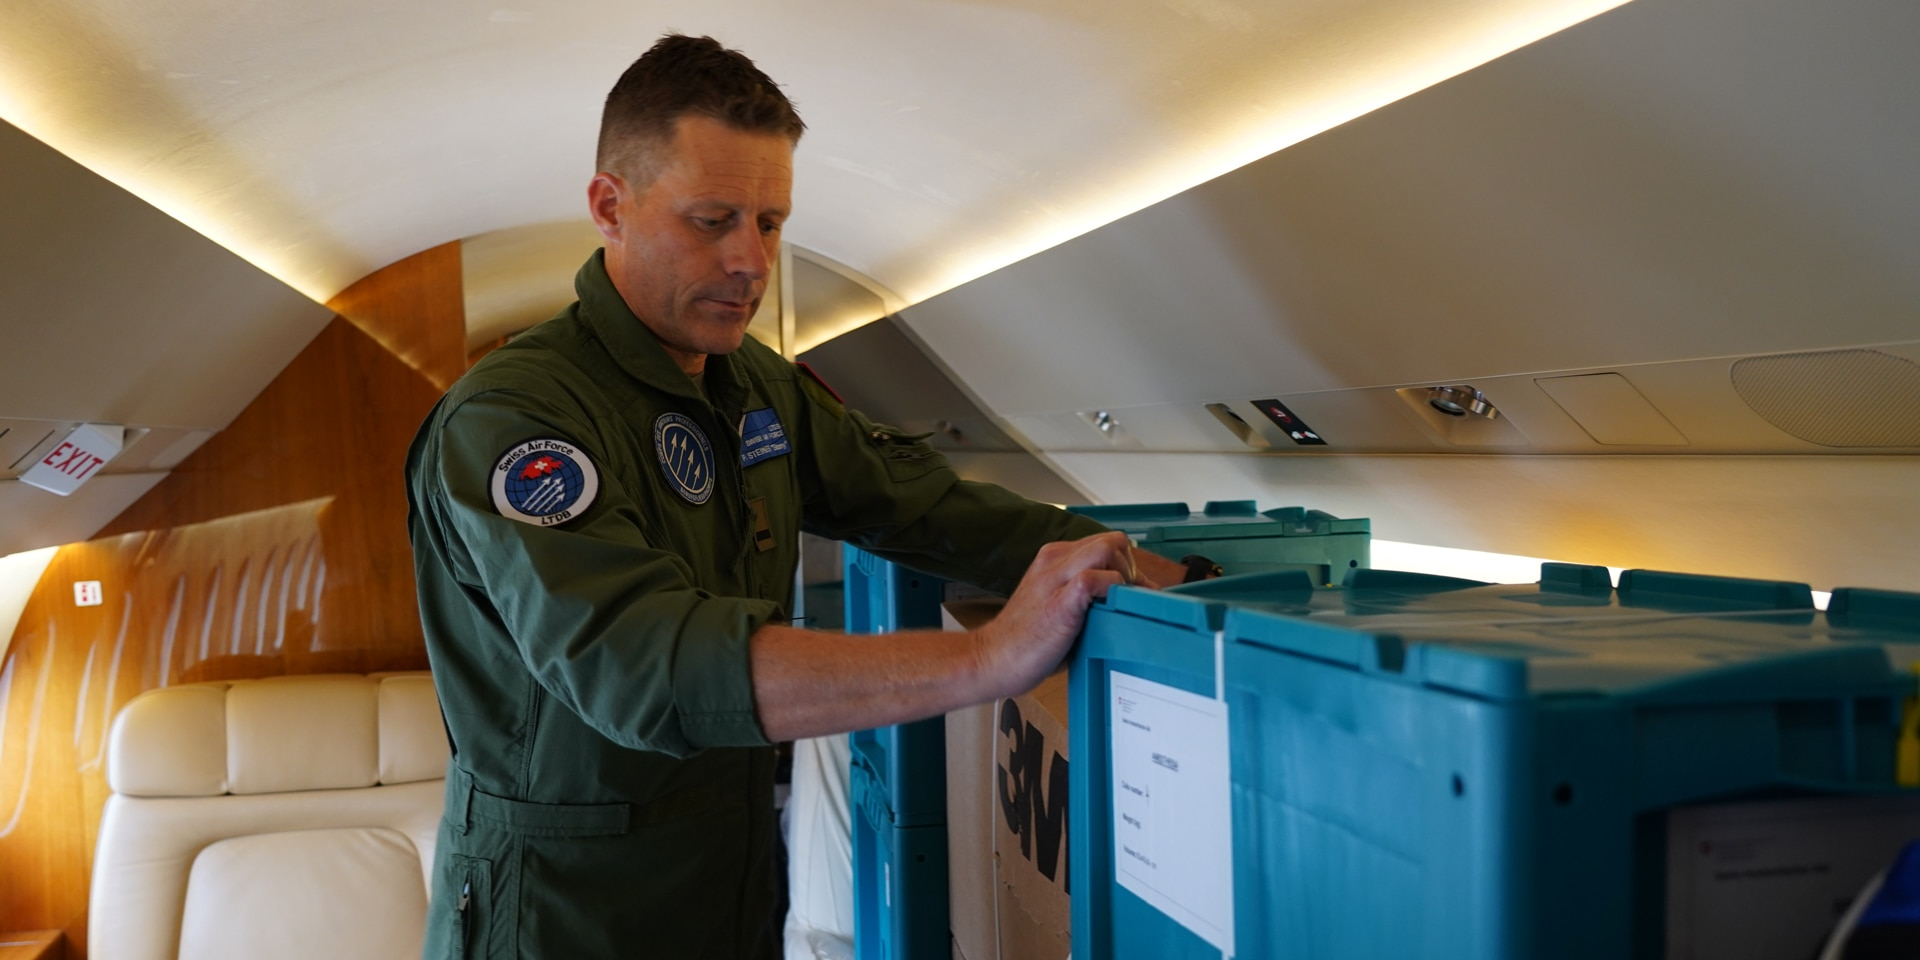 A pilot inside an aircraft checking that boxes of relief supplies are securely fastened.